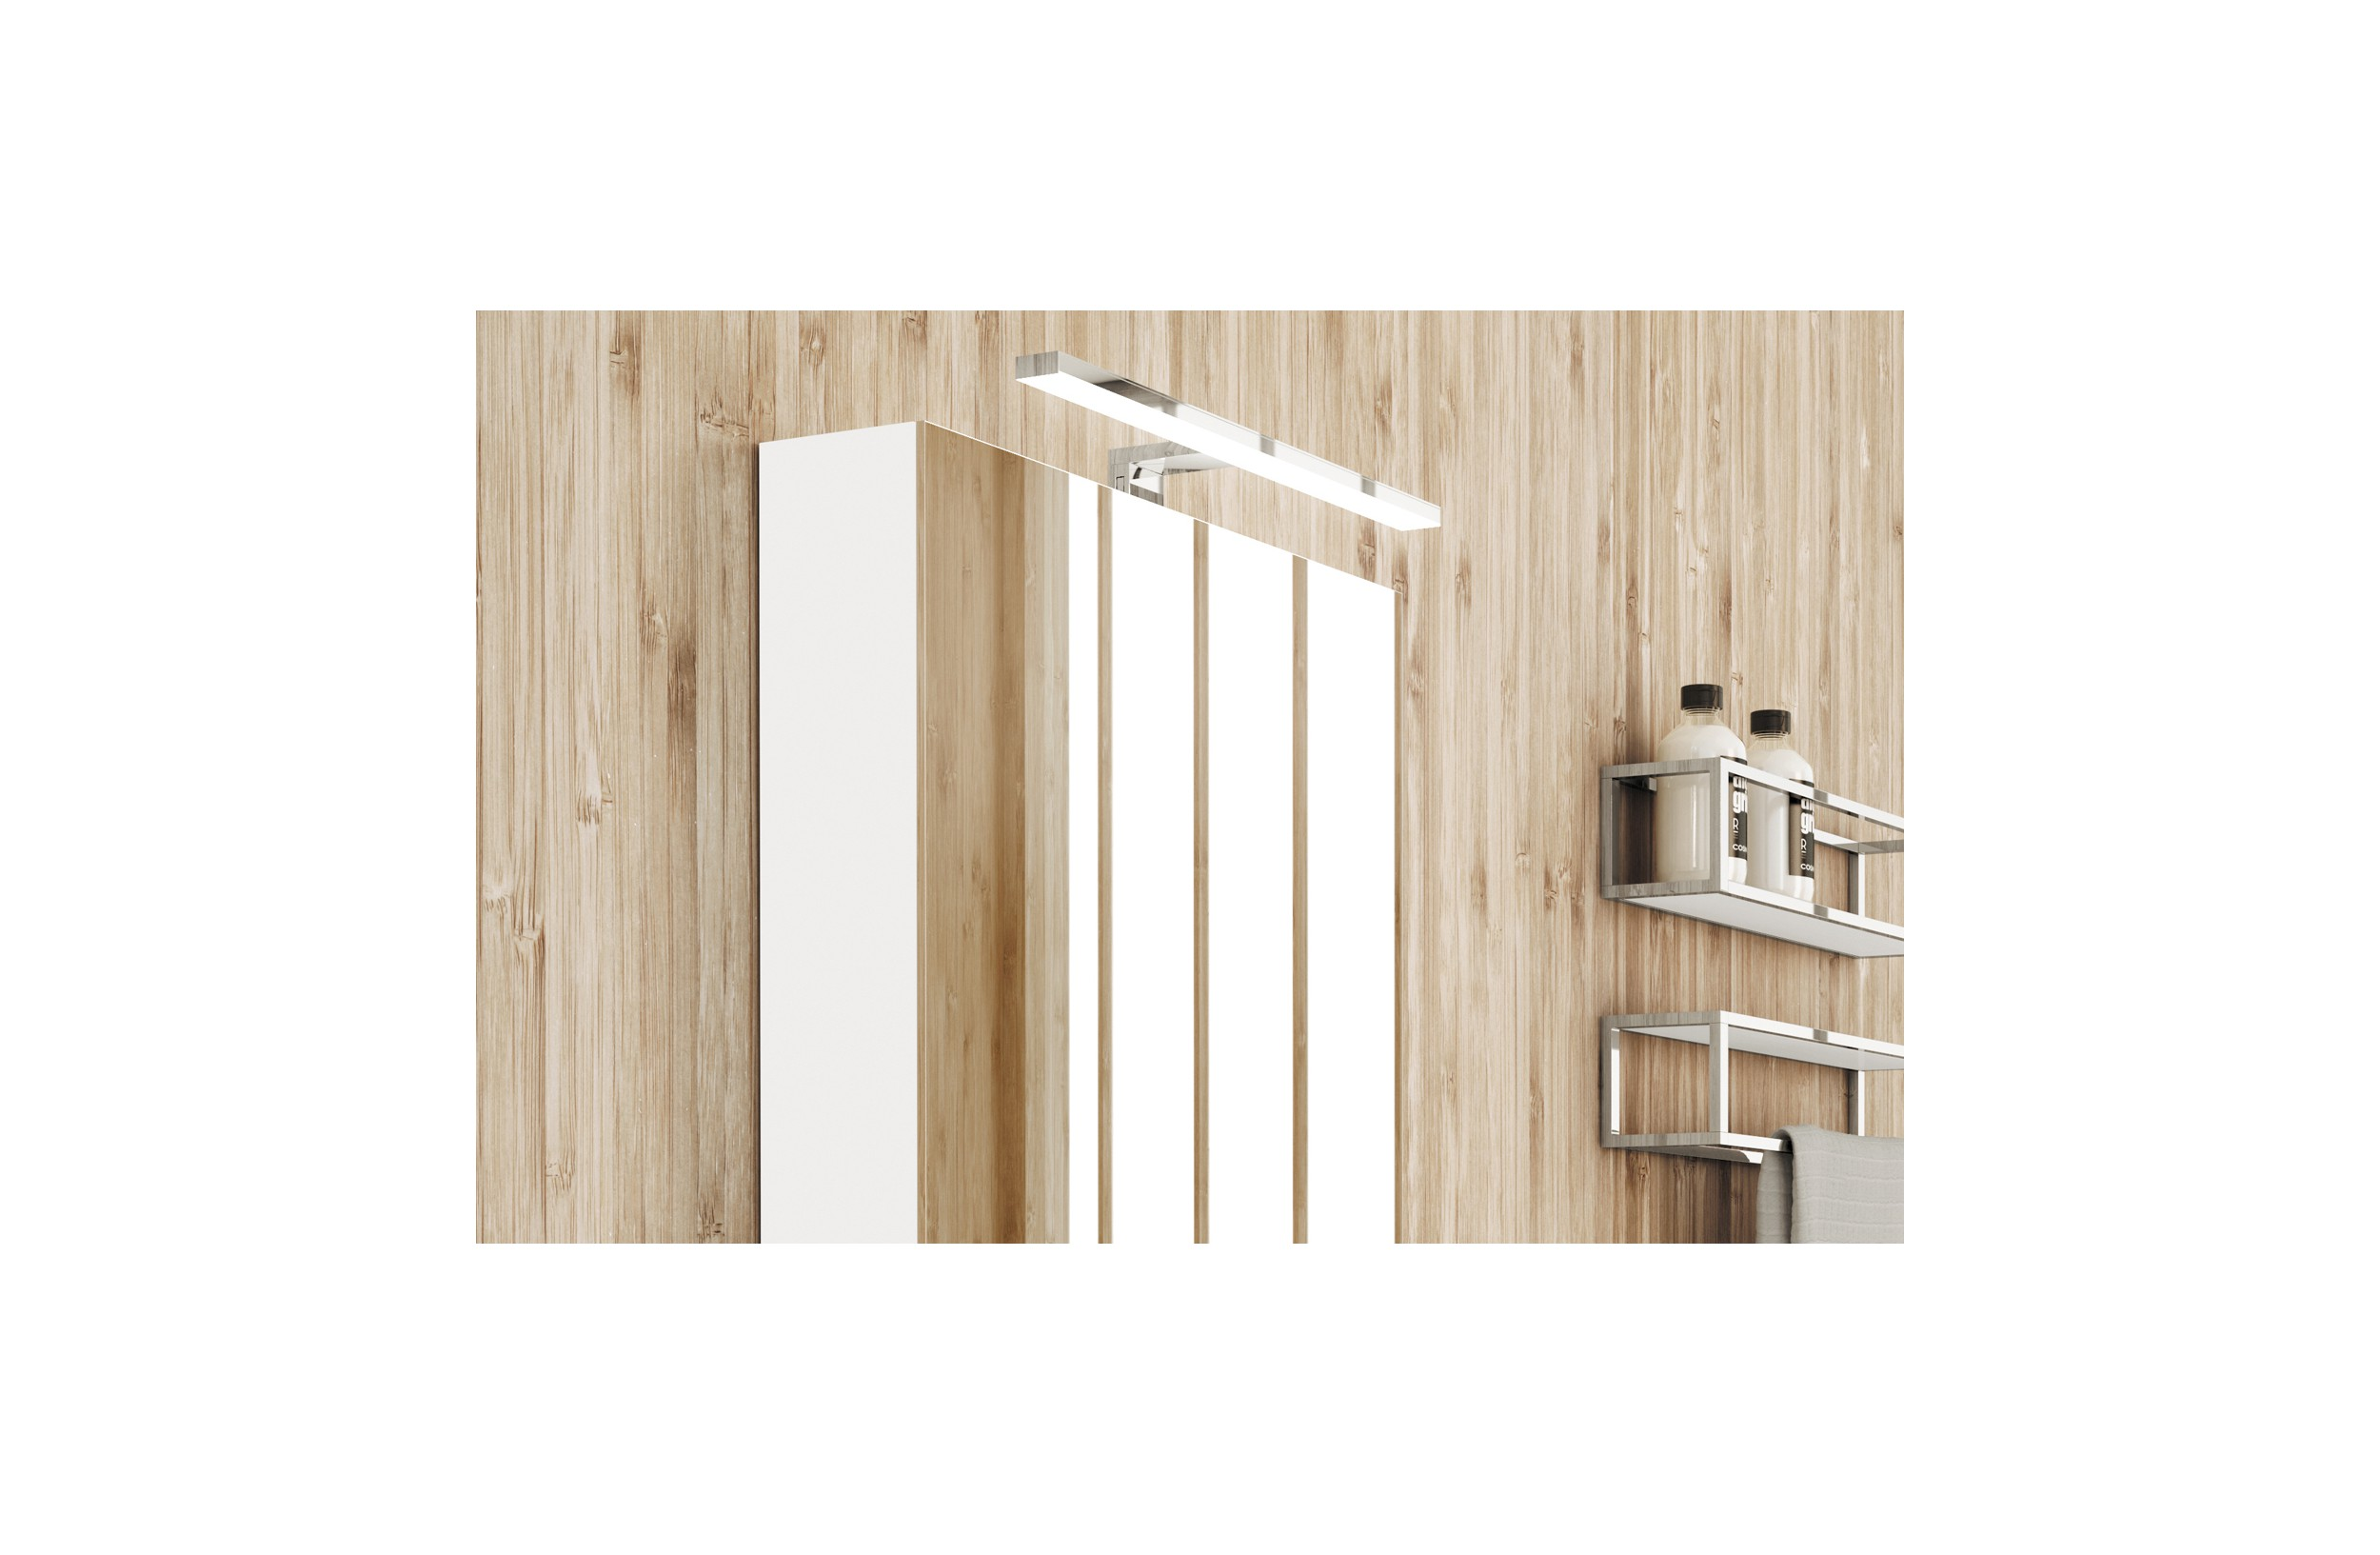 Aplique Baño Aplique Led Para Mueble Baño Light 45 Cm Cromo Cosmic